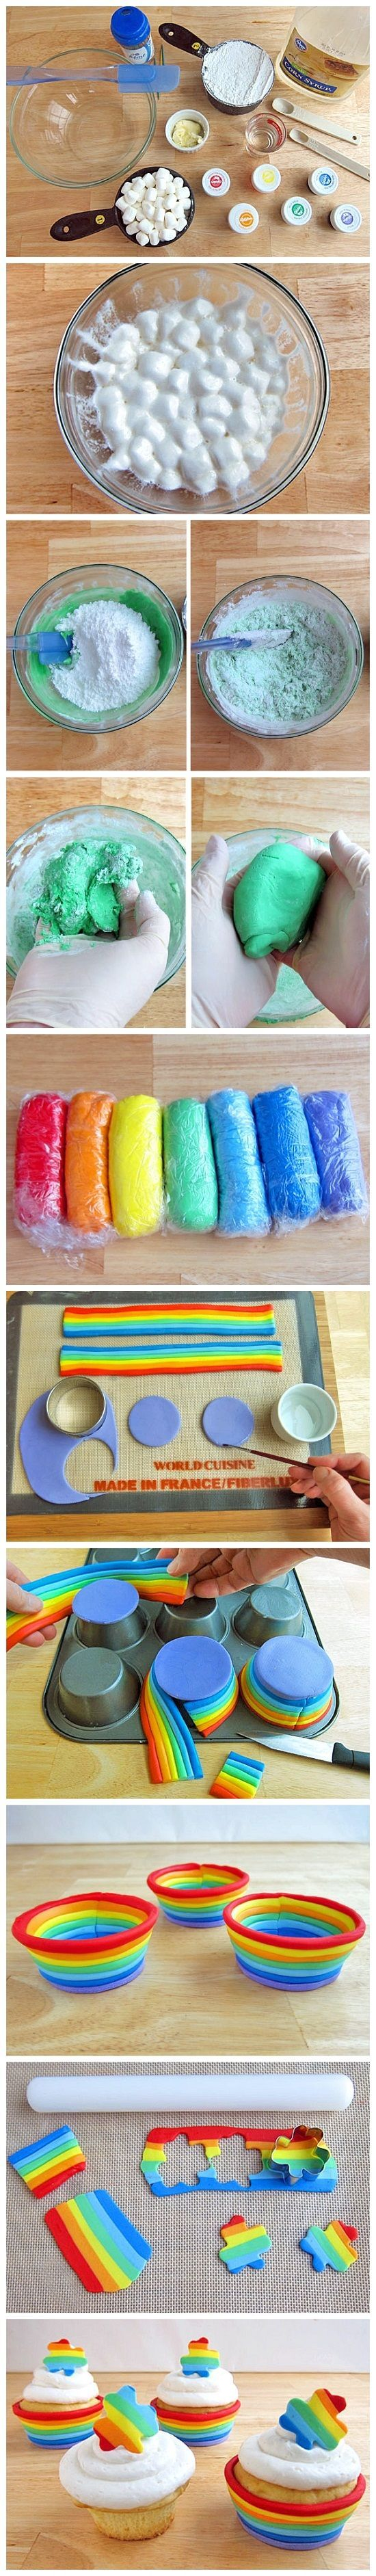 Edible Fondant Rainbow Cupcake Wrappers  veganize this can be done'